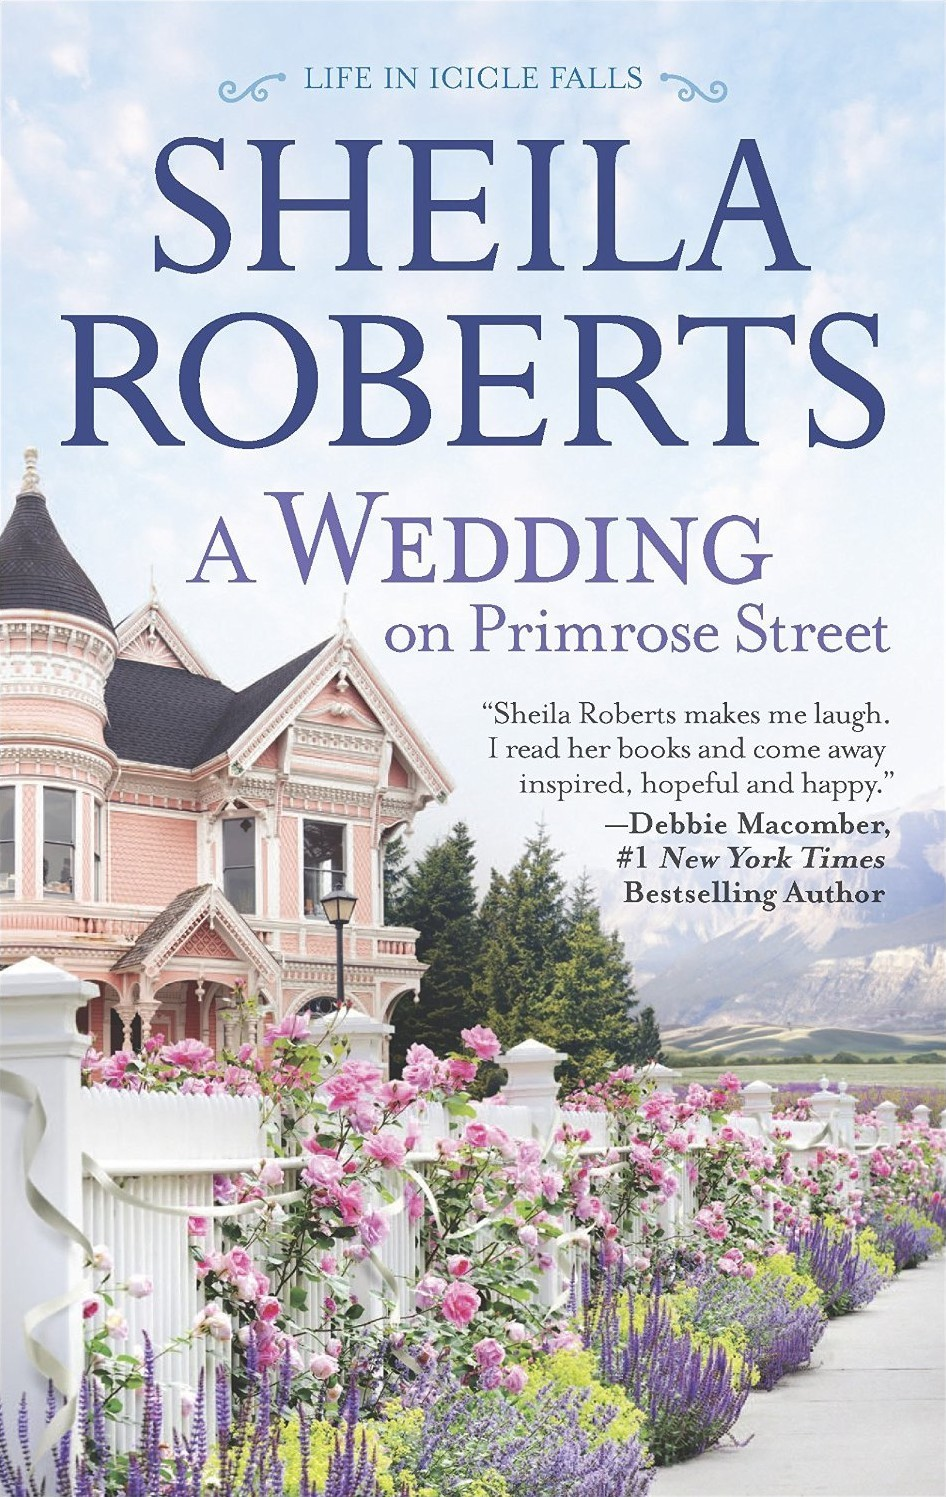 A Wedding on Primrose Street (Life in Icicle Falls, #7) Sheila Roberts